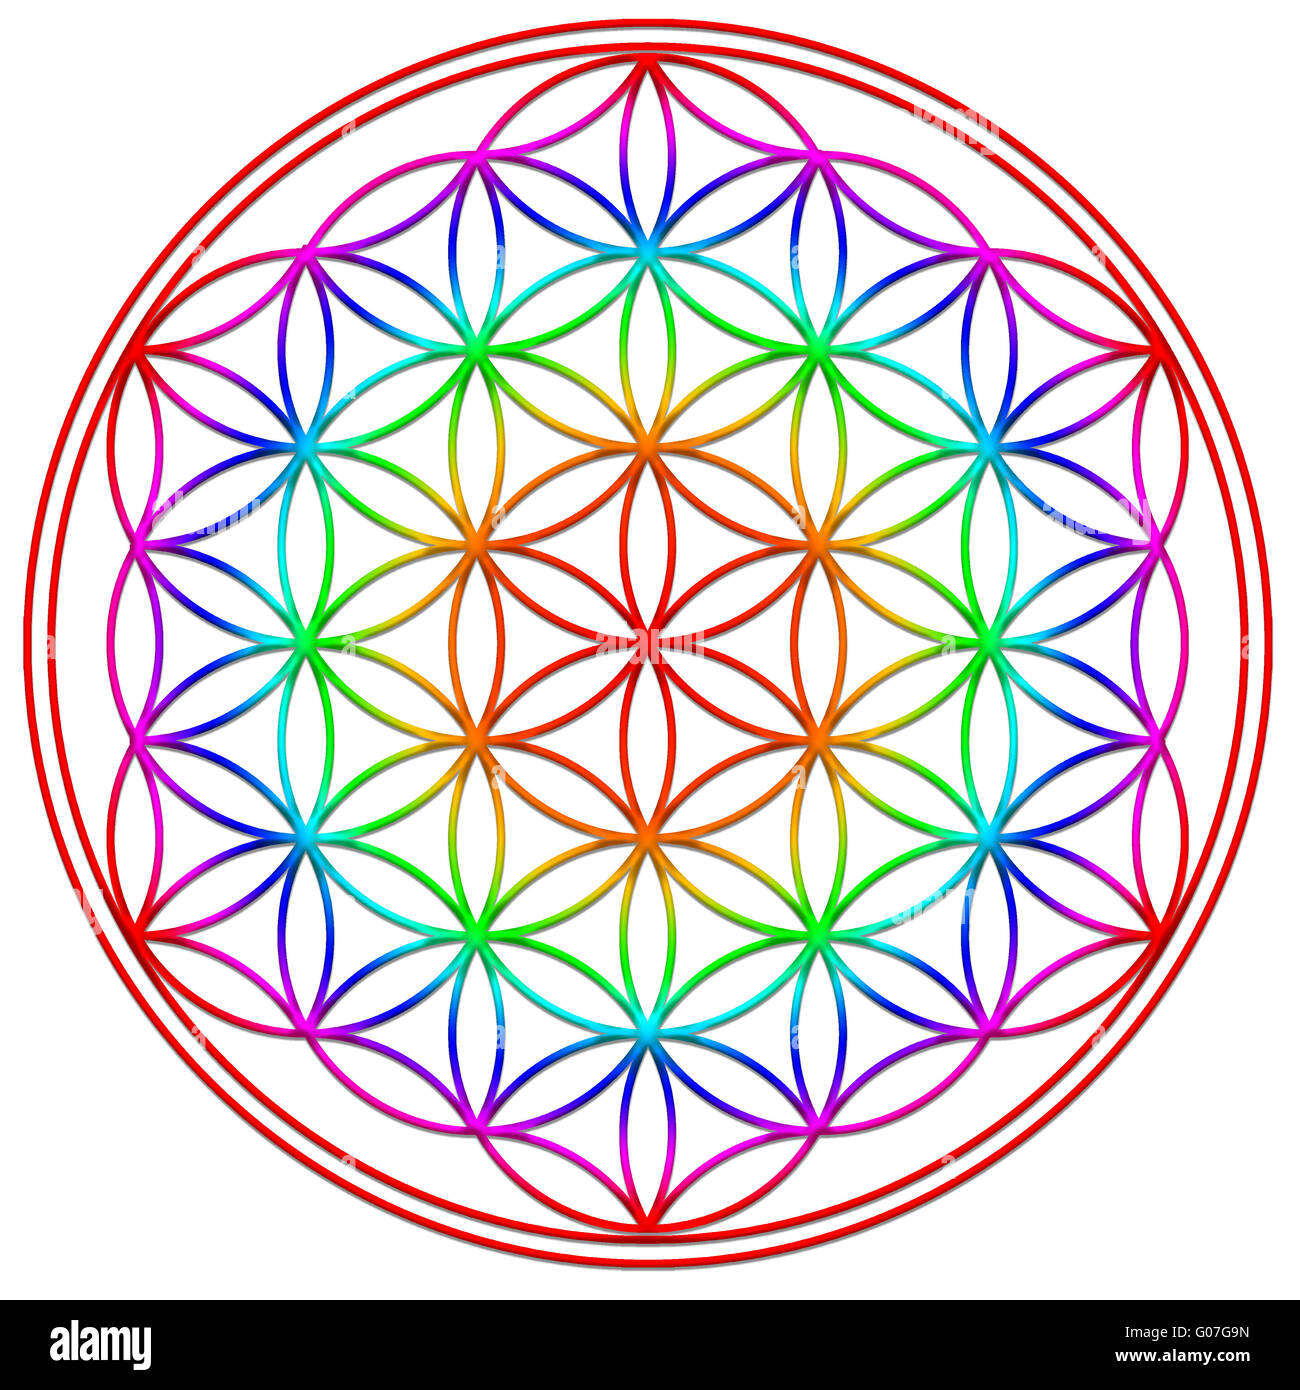 flower of life - rainbow - Stock Image